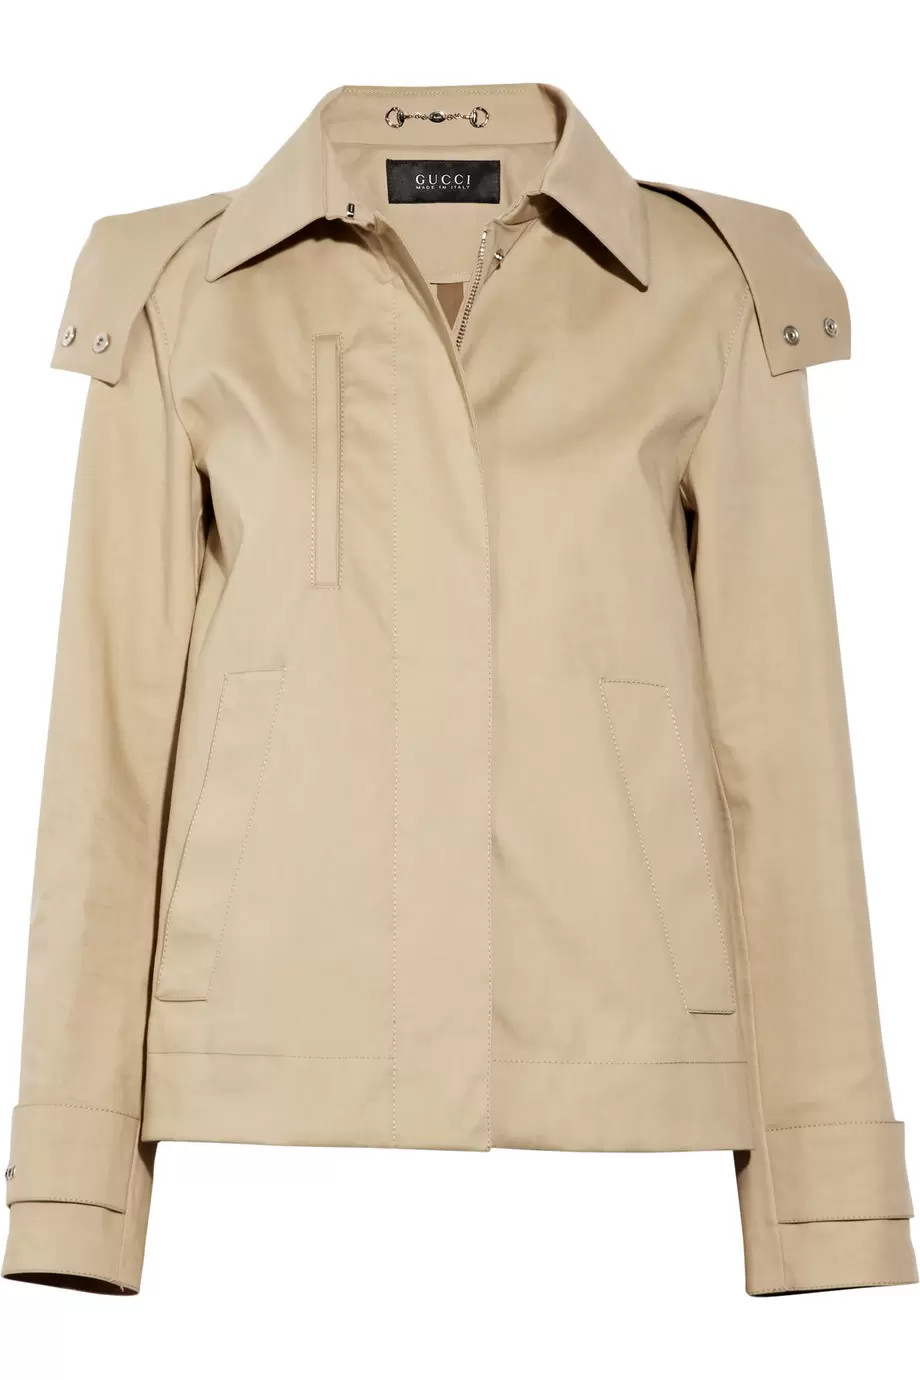 Gucci Short Cotton-Canvas Hooded Raincoat, Size: 44